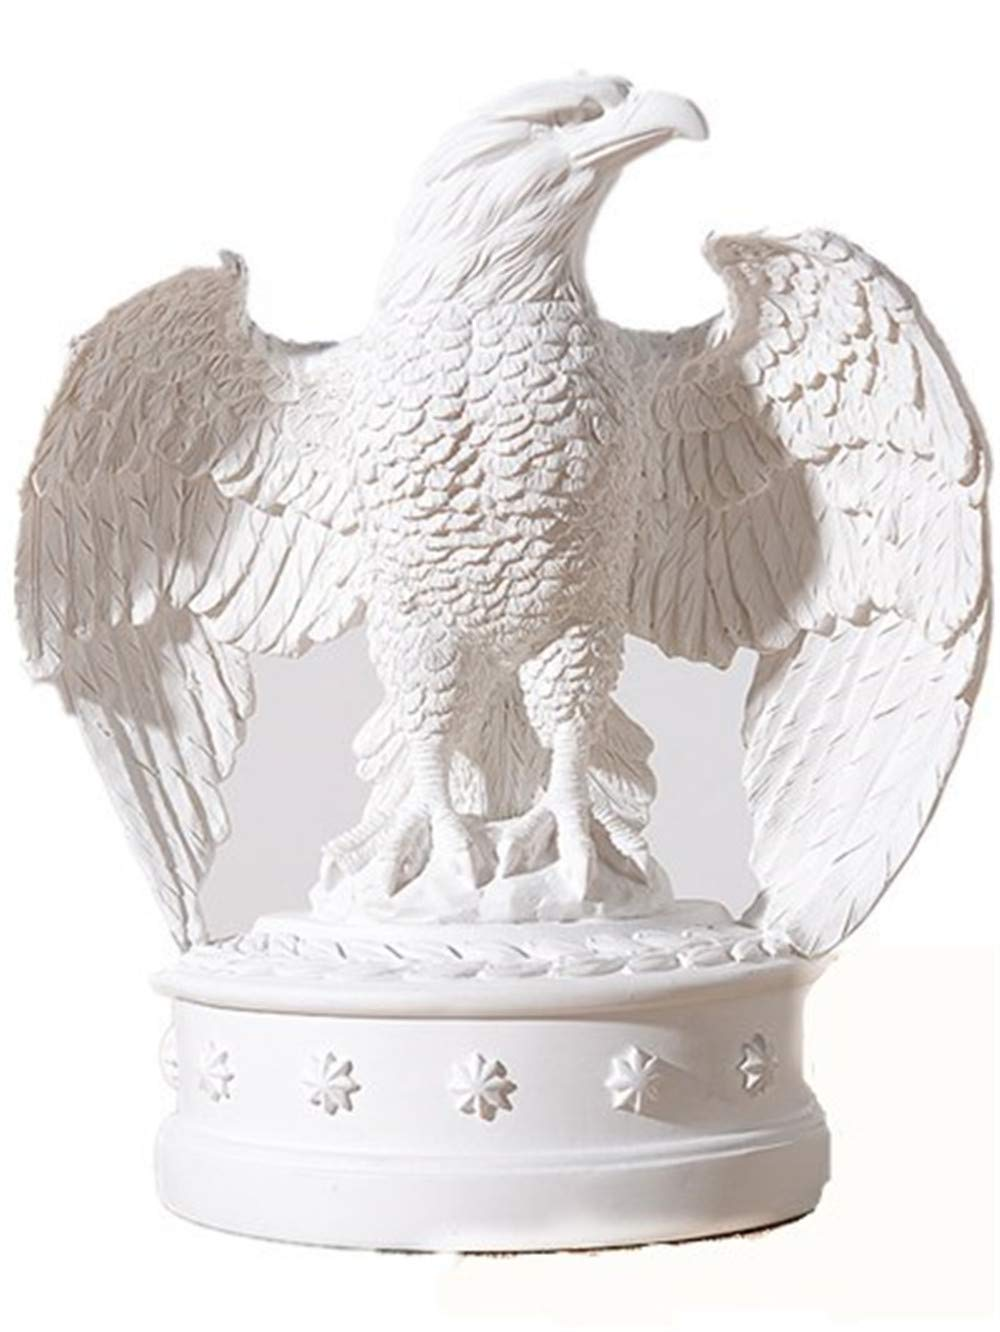 Flying Eagle Sculpture Statue Craft Home Model Home Table Decoration Geometric Resin Wildlife Eagle Statue Crafts (White)